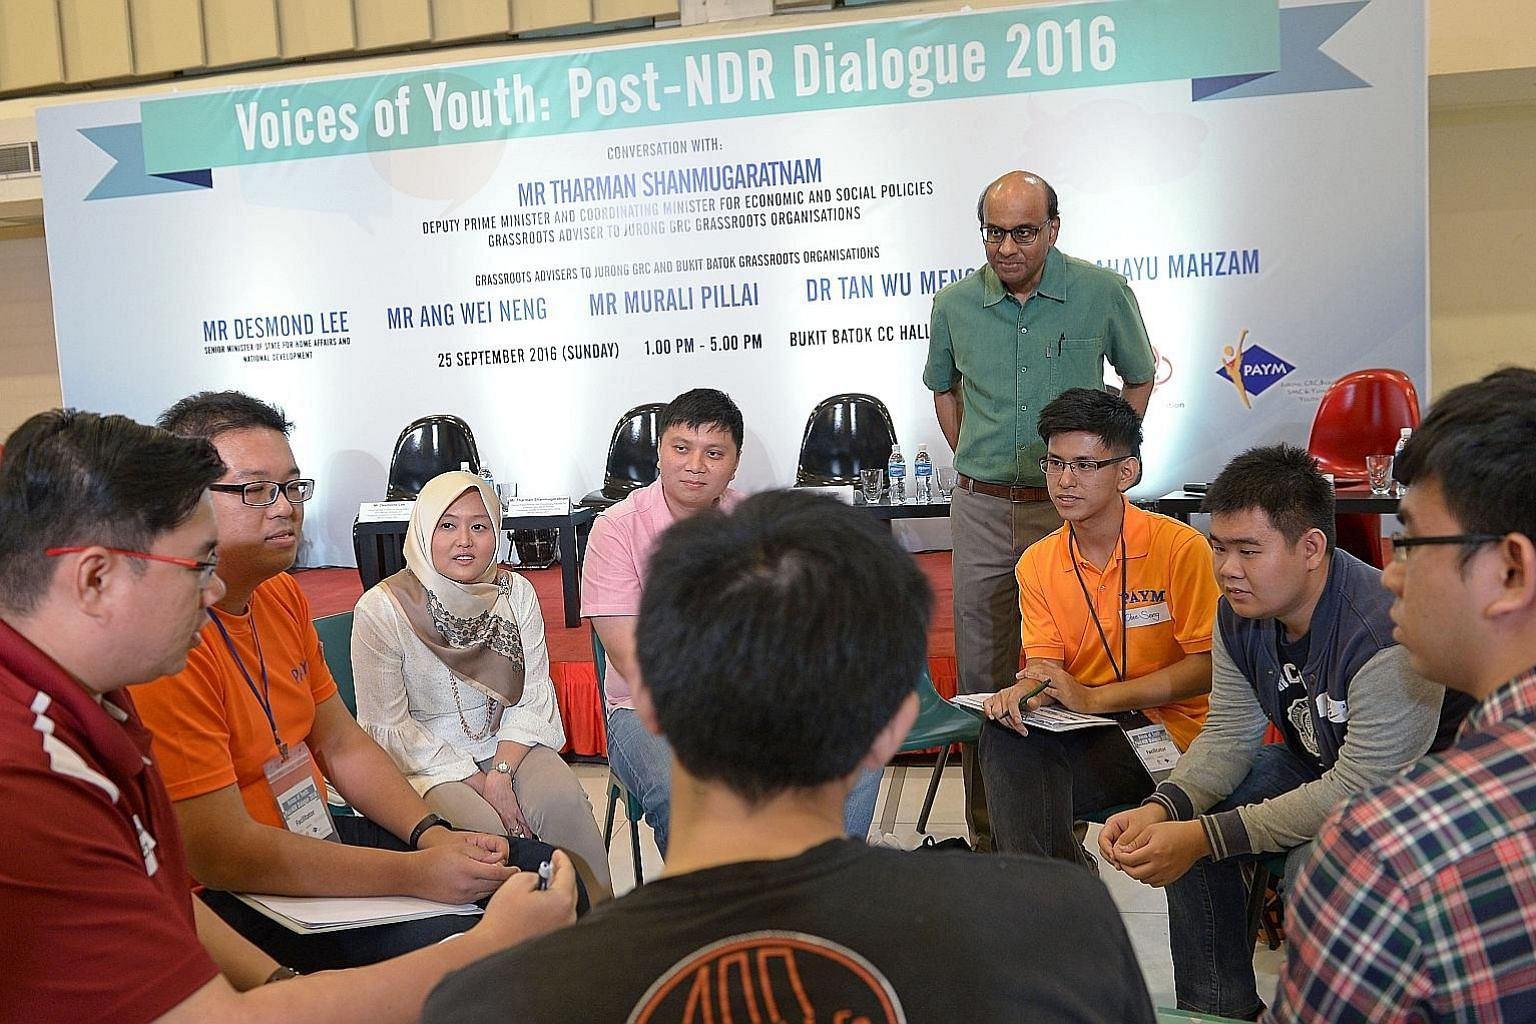 Mr Tharman and Jurong GRC MP Rahayu Mahzam (third from left) at a small group discussion with young people yesterday. After the discussions, participants took part in a dialogue with MPs from Jurong GRC and Bukit Batok, where they discussed issues ra